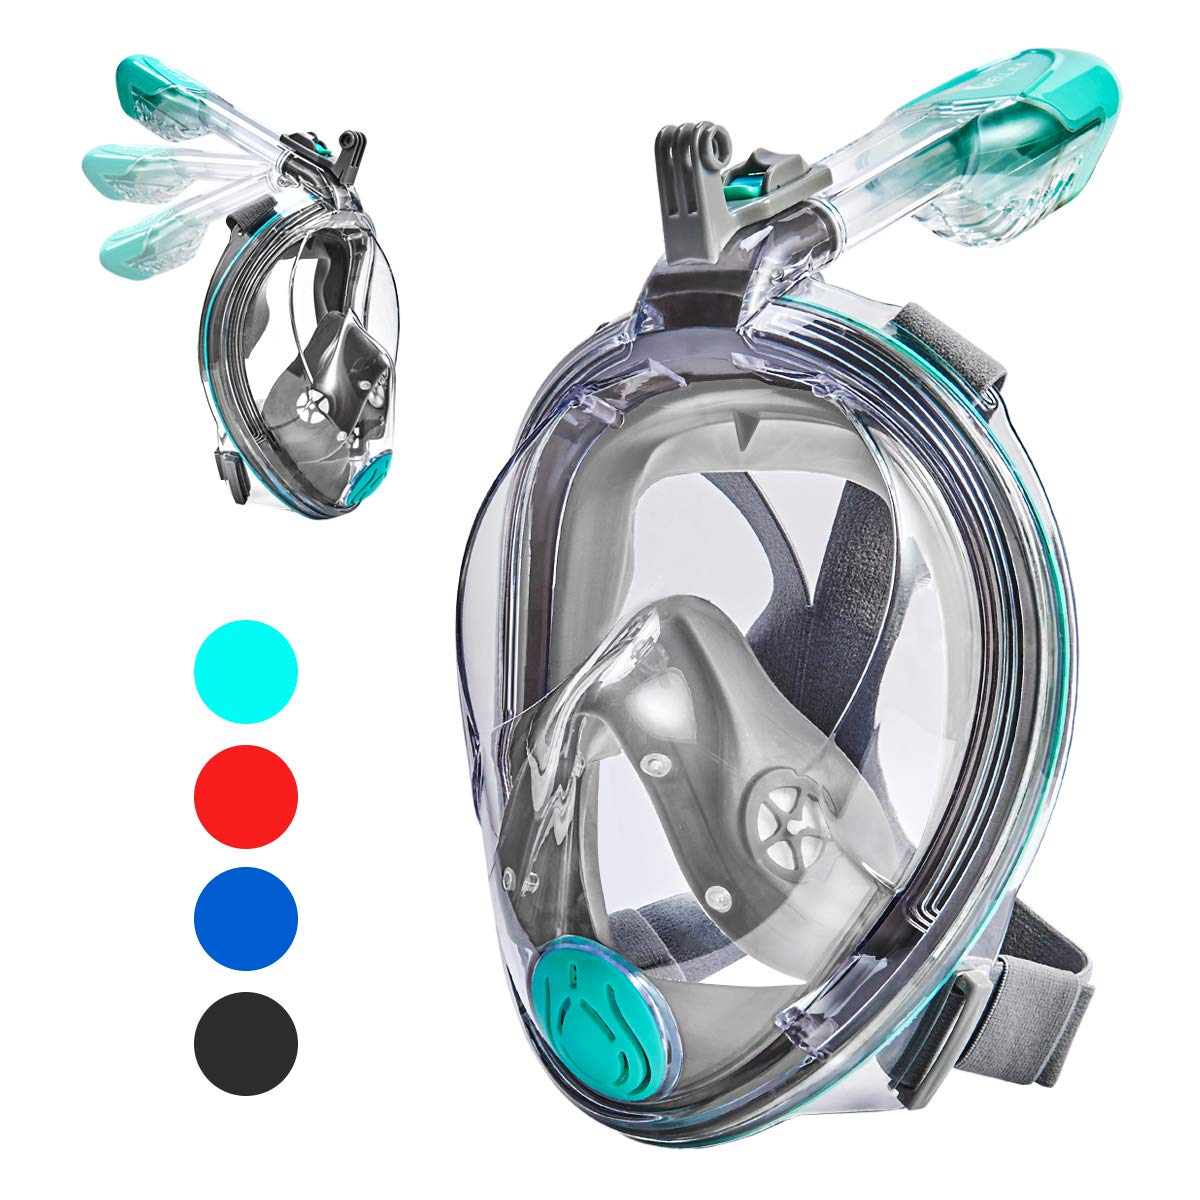 VELLAA Snorkel Mask Full Face for Kids and Adults, Dry Top Set Anti-Fog Anti-Leak 180 Panoramic Large View Free Breath with Detachable Camera Mount, Adjustable Head Straps Foldable Snorkeling Mask by VELLAA